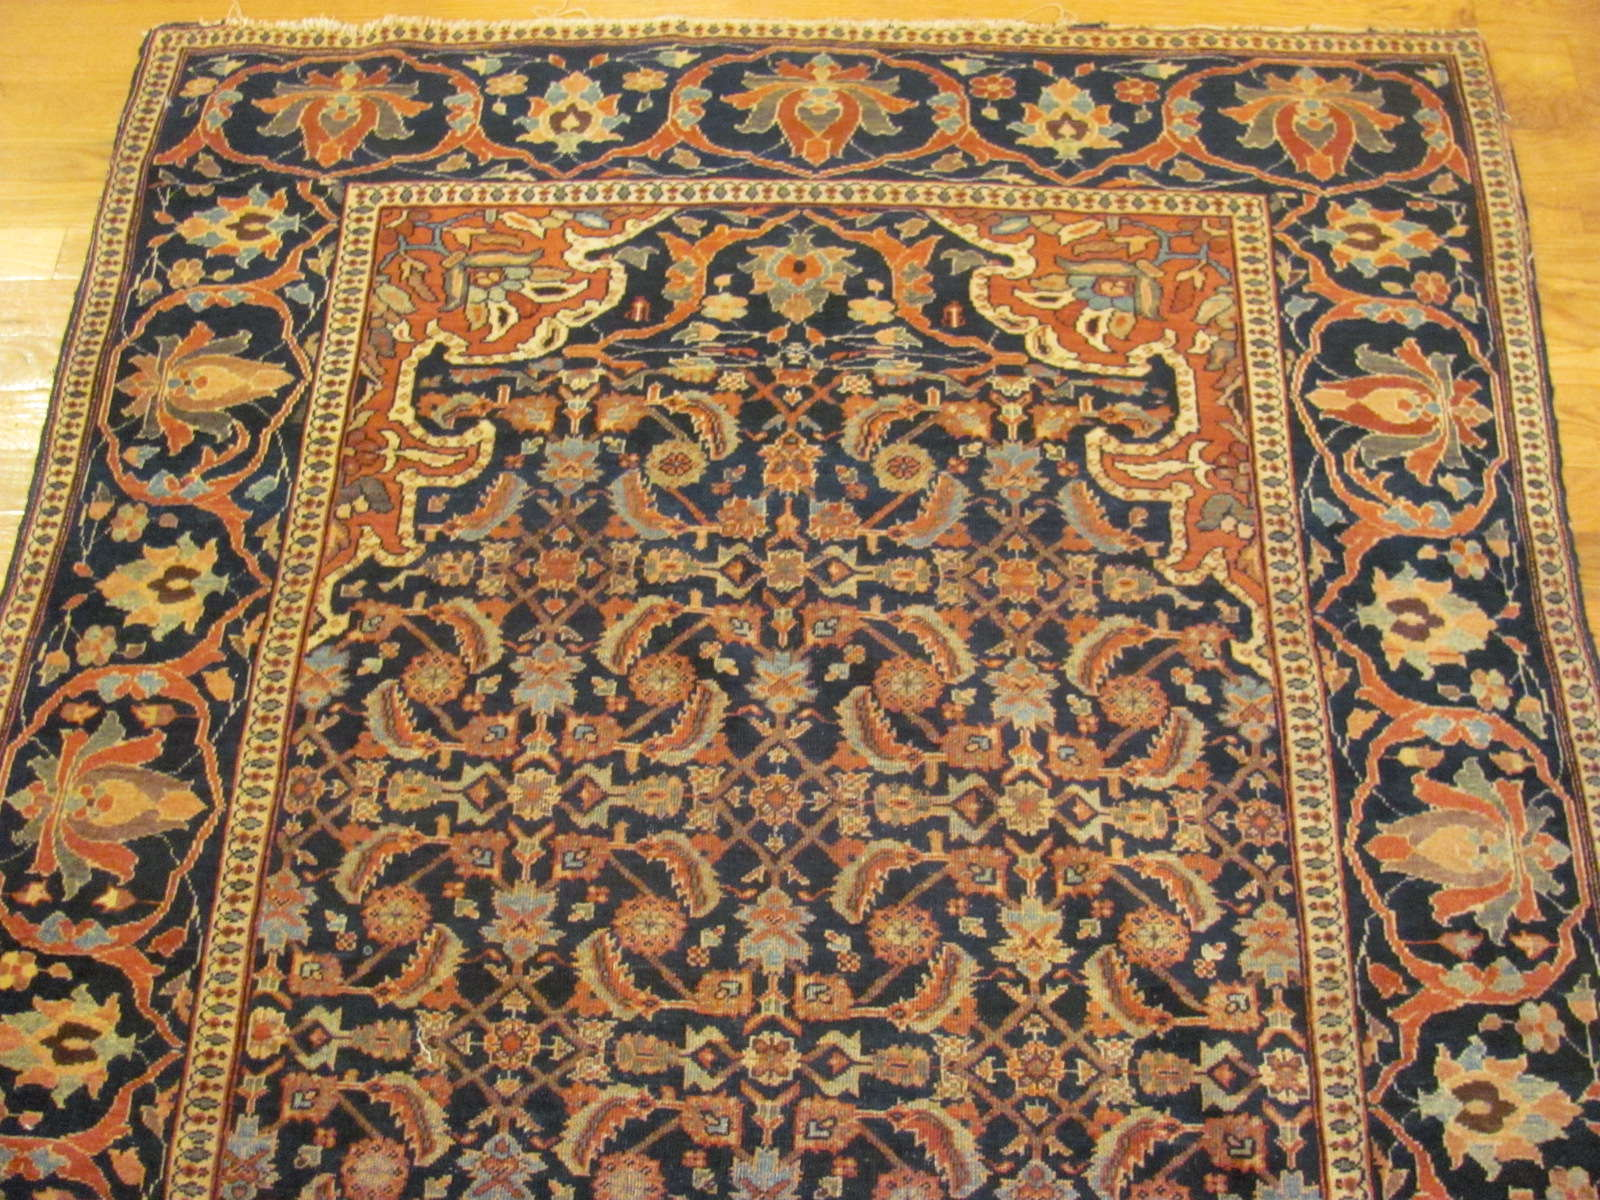 24602 antique Persian Sarouk Ferahan rug 4,2 x 6, 10 -1